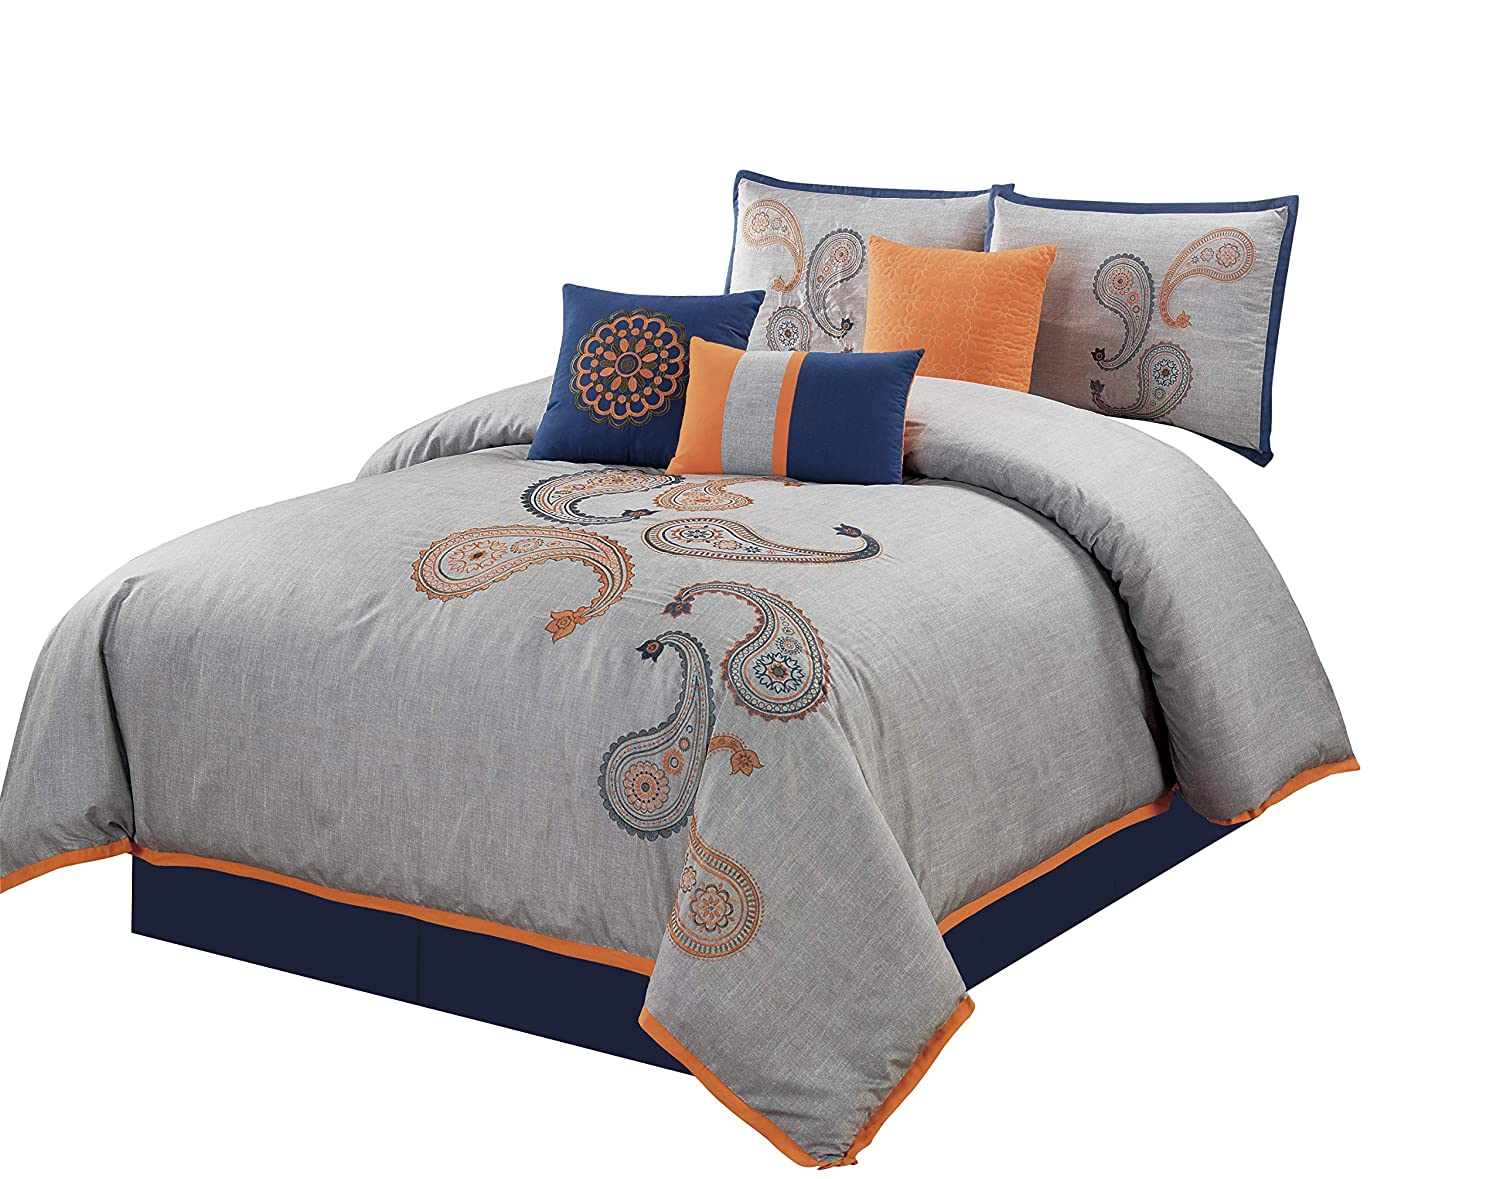 Chezmoi Collection Naomi 7-Piece Navy Orange Paisley Floral Embroidery Comforter Bedding Set (King)